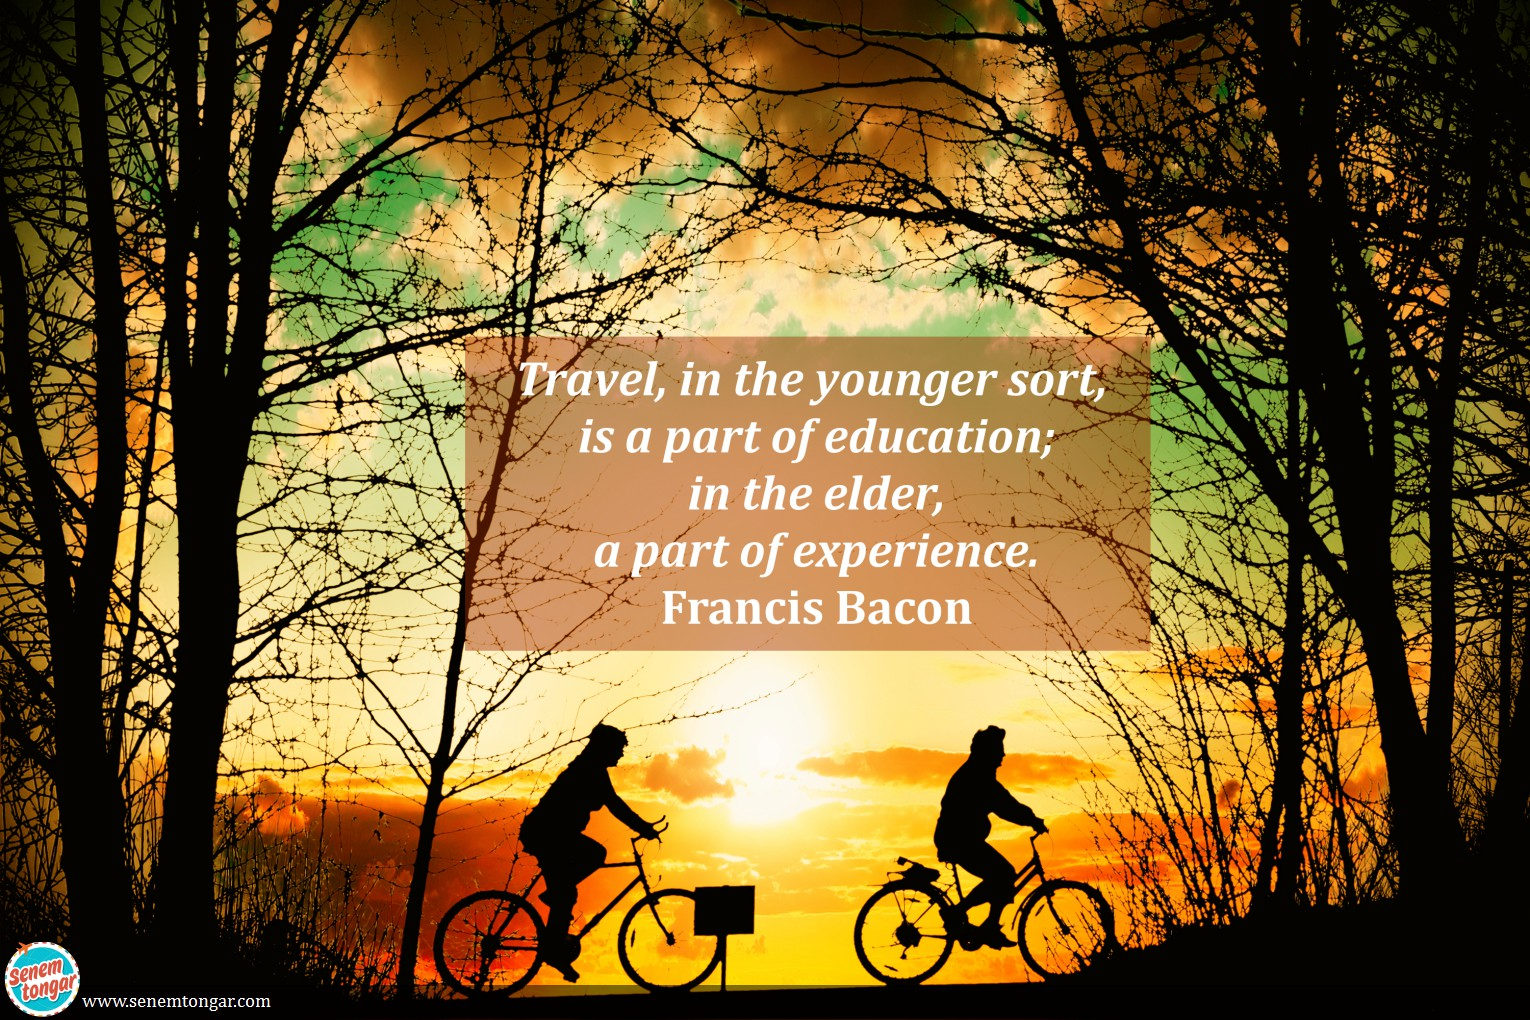 francis bacon travel